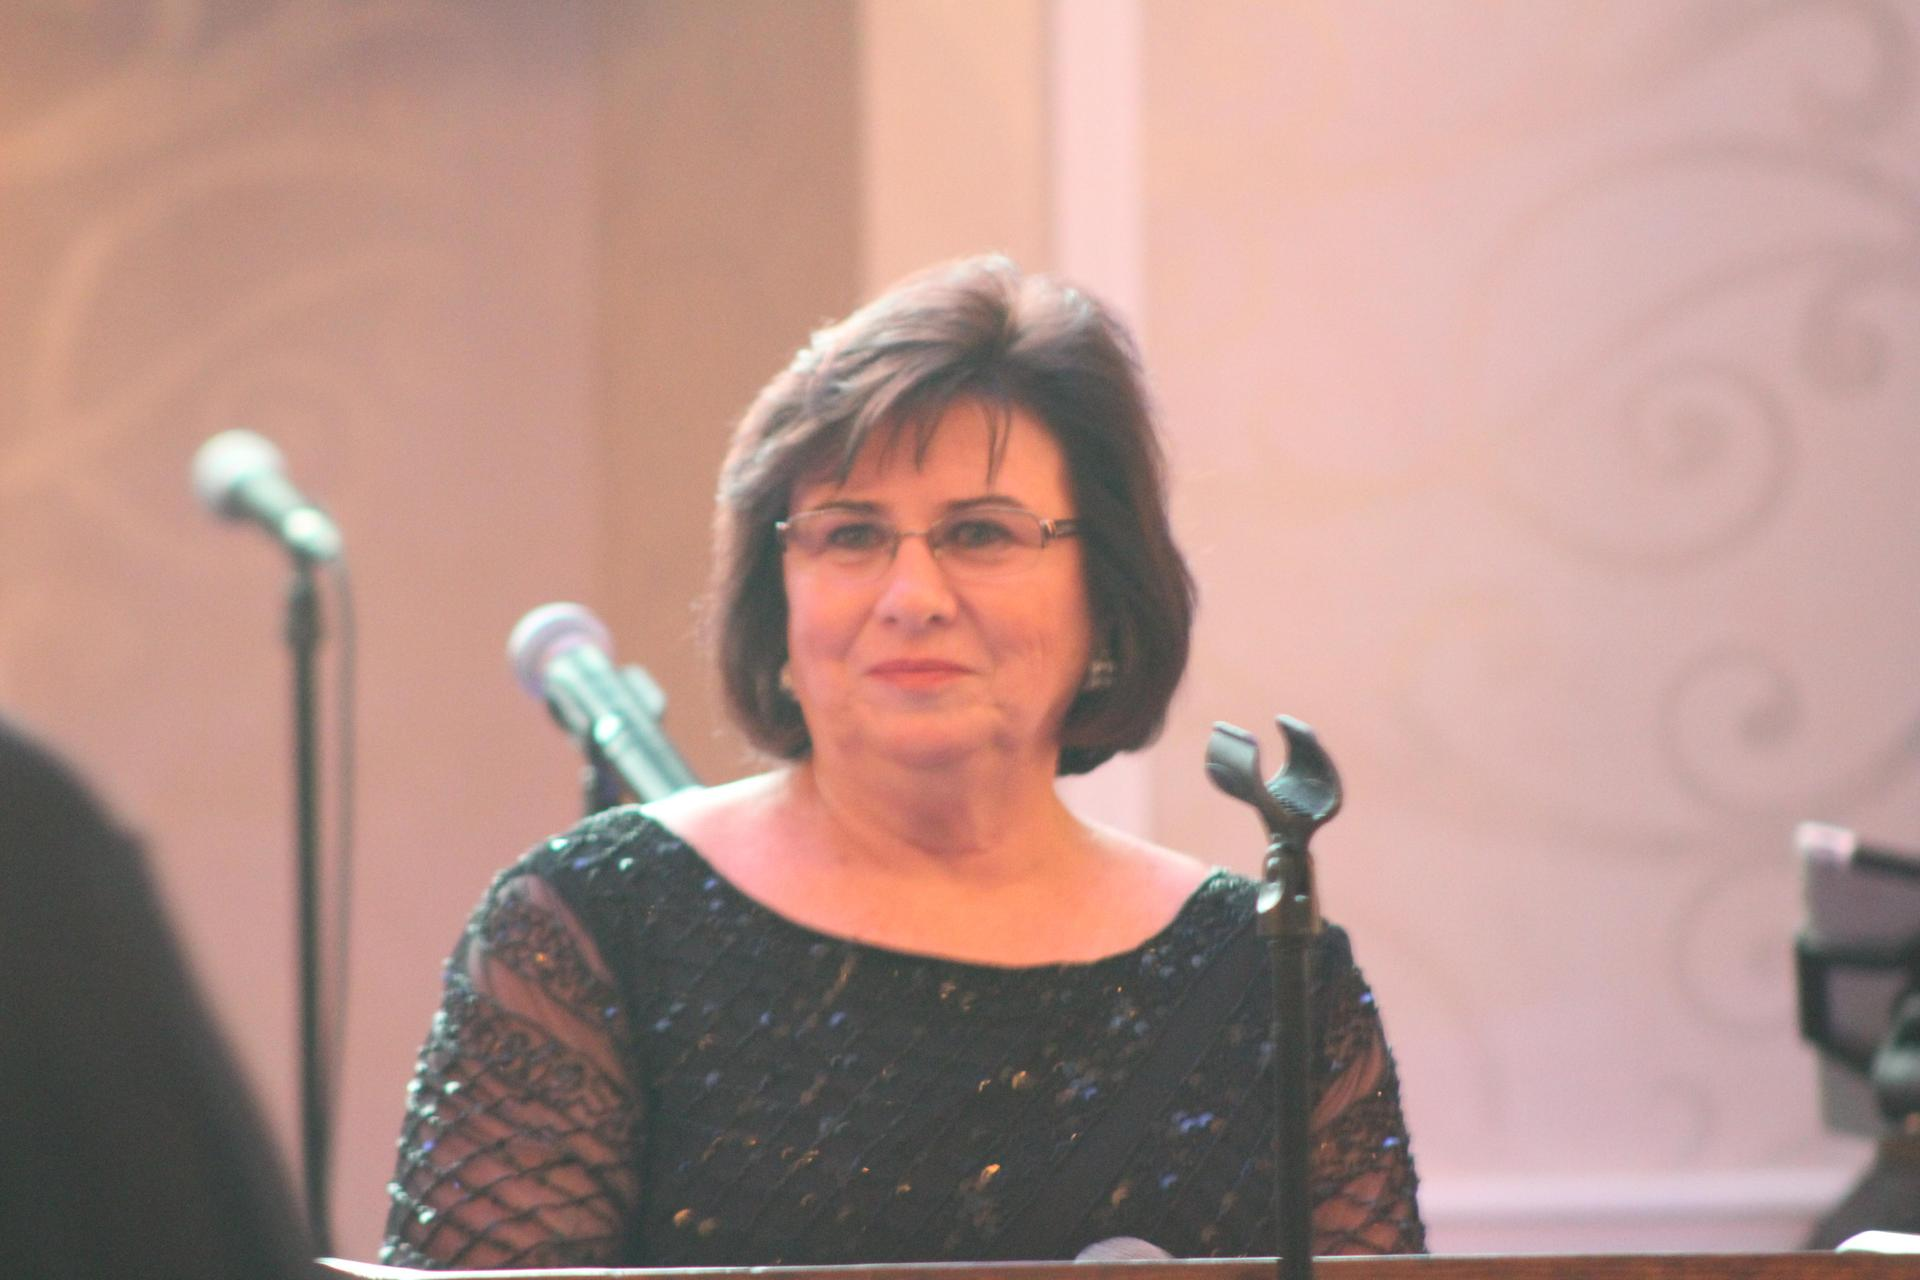 Mary Scairrillo at the 2018 Gala.